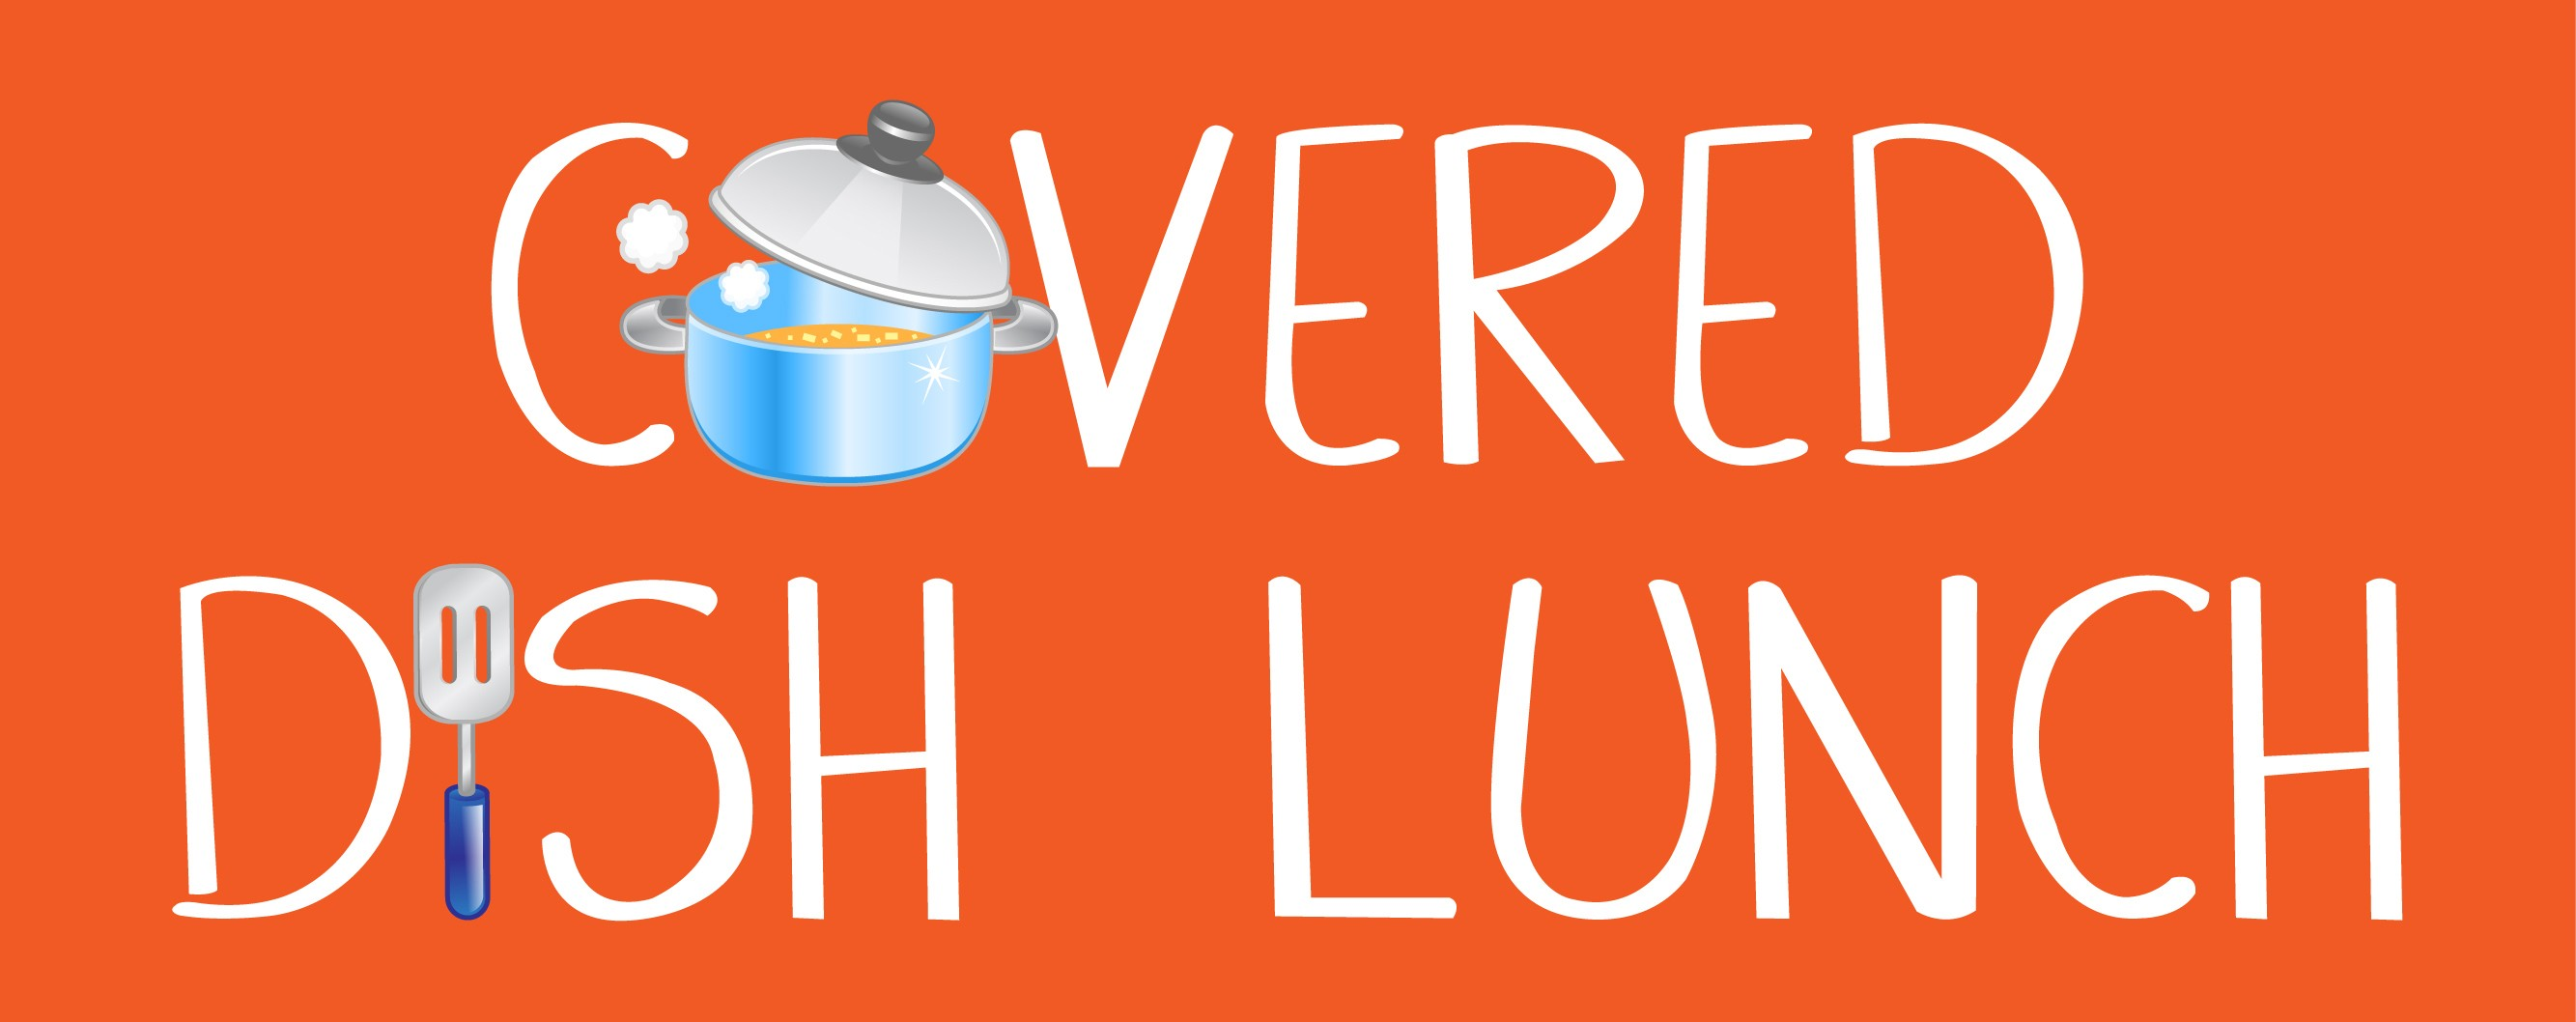 Luncheon clipart covered dish. Lunch may